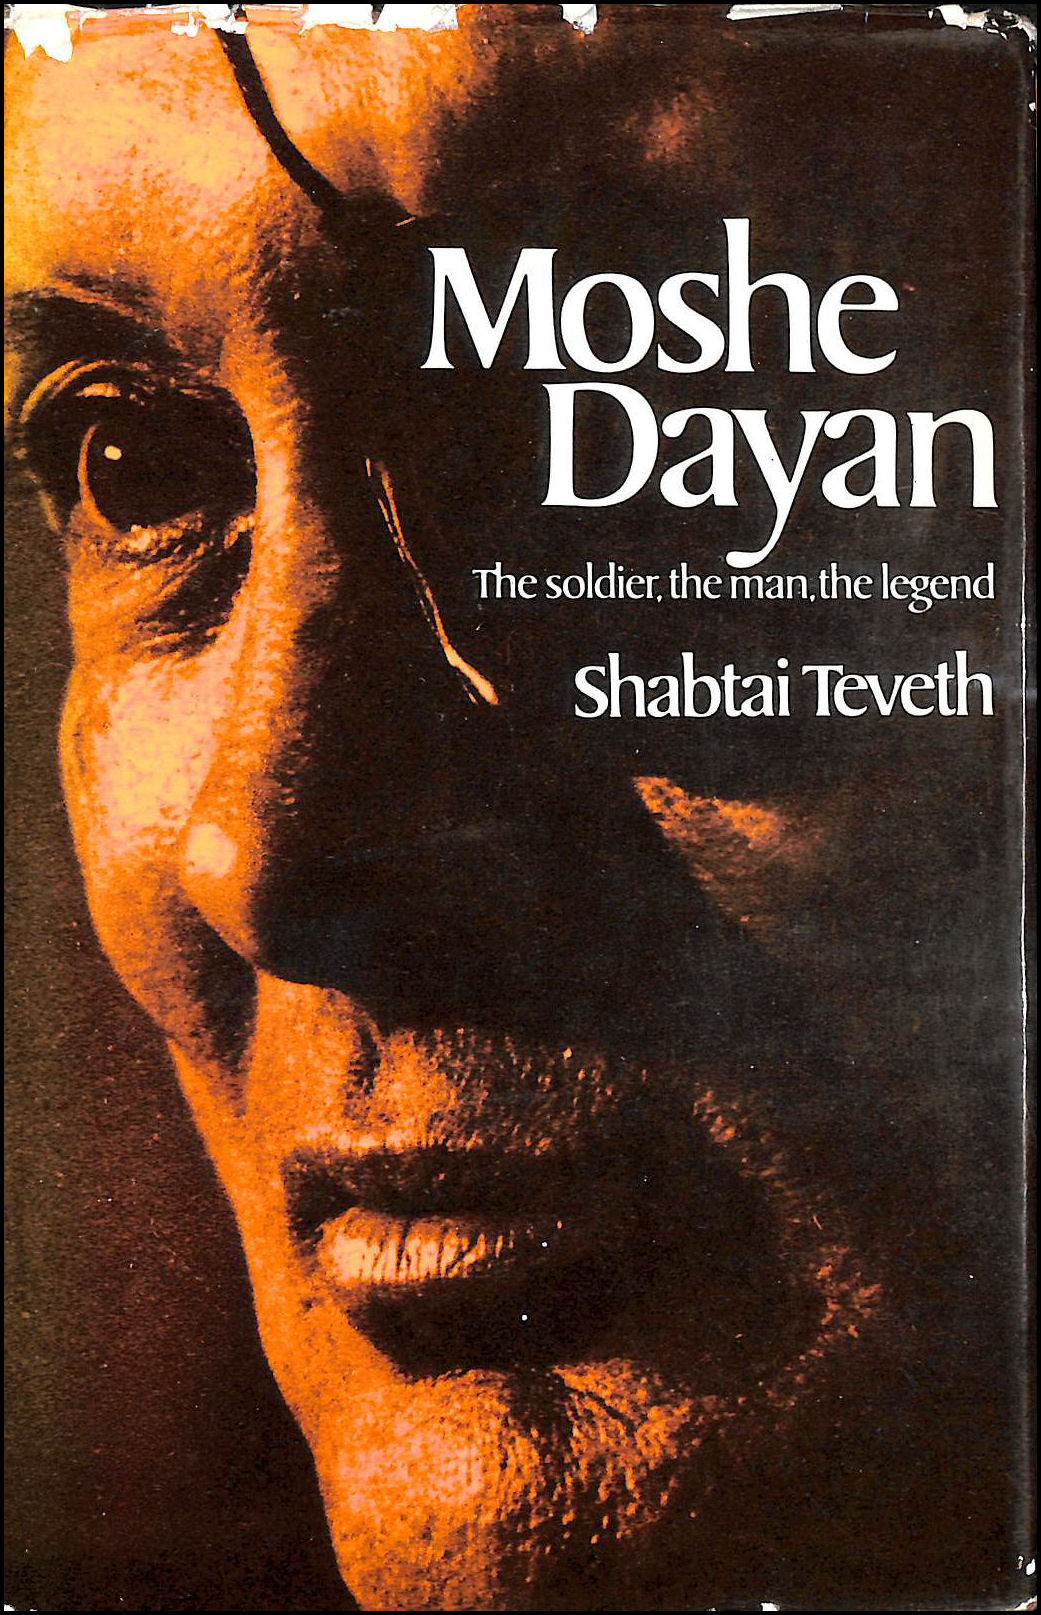 Image for Moshe Dayan: The Soldier, The Man, The Legend